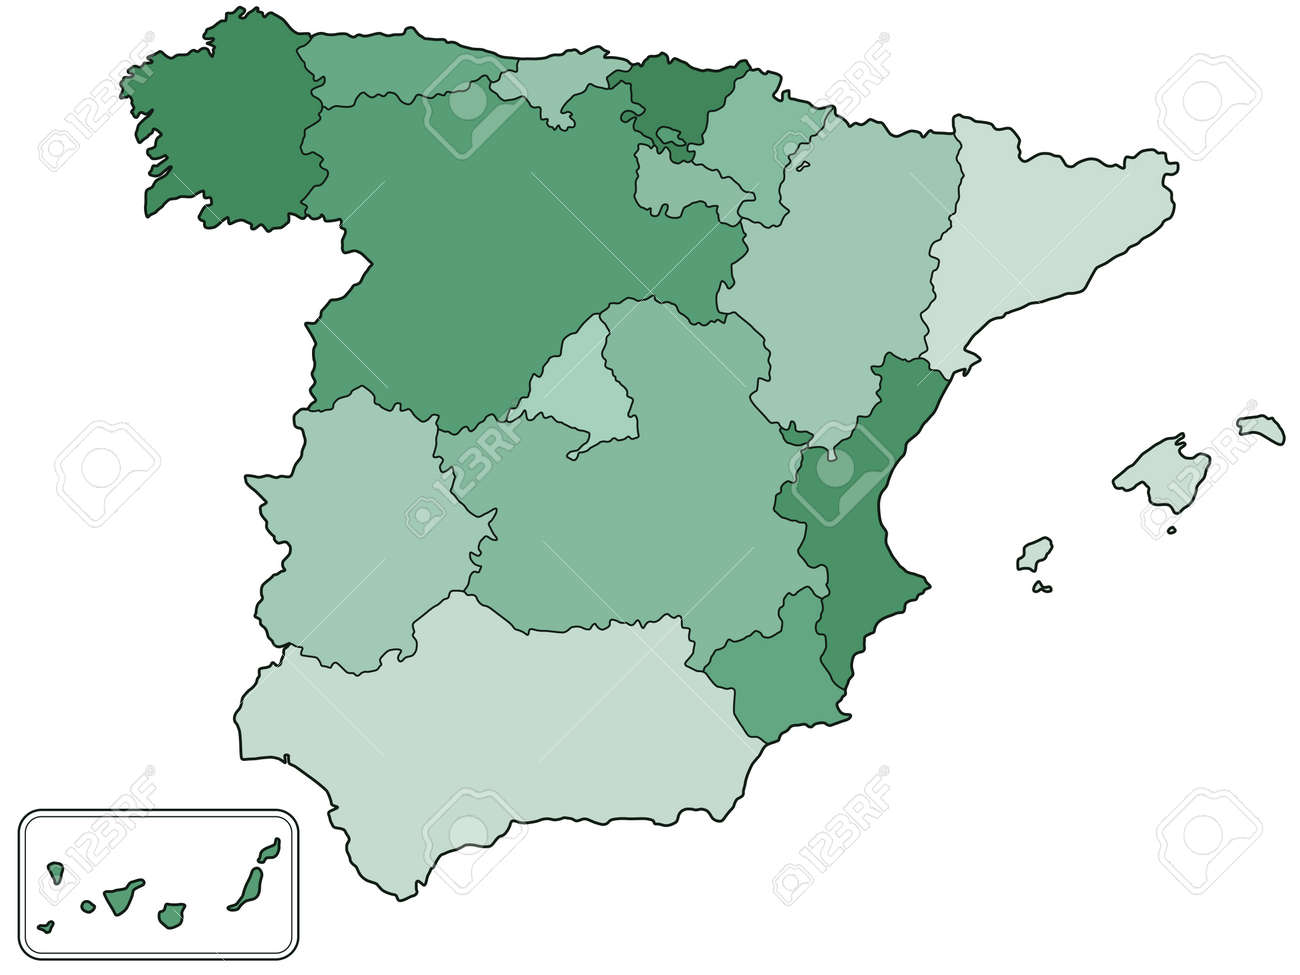 Map Of Spain Jpg.Silhouette Contour Border Map Of The Spain With Regions All